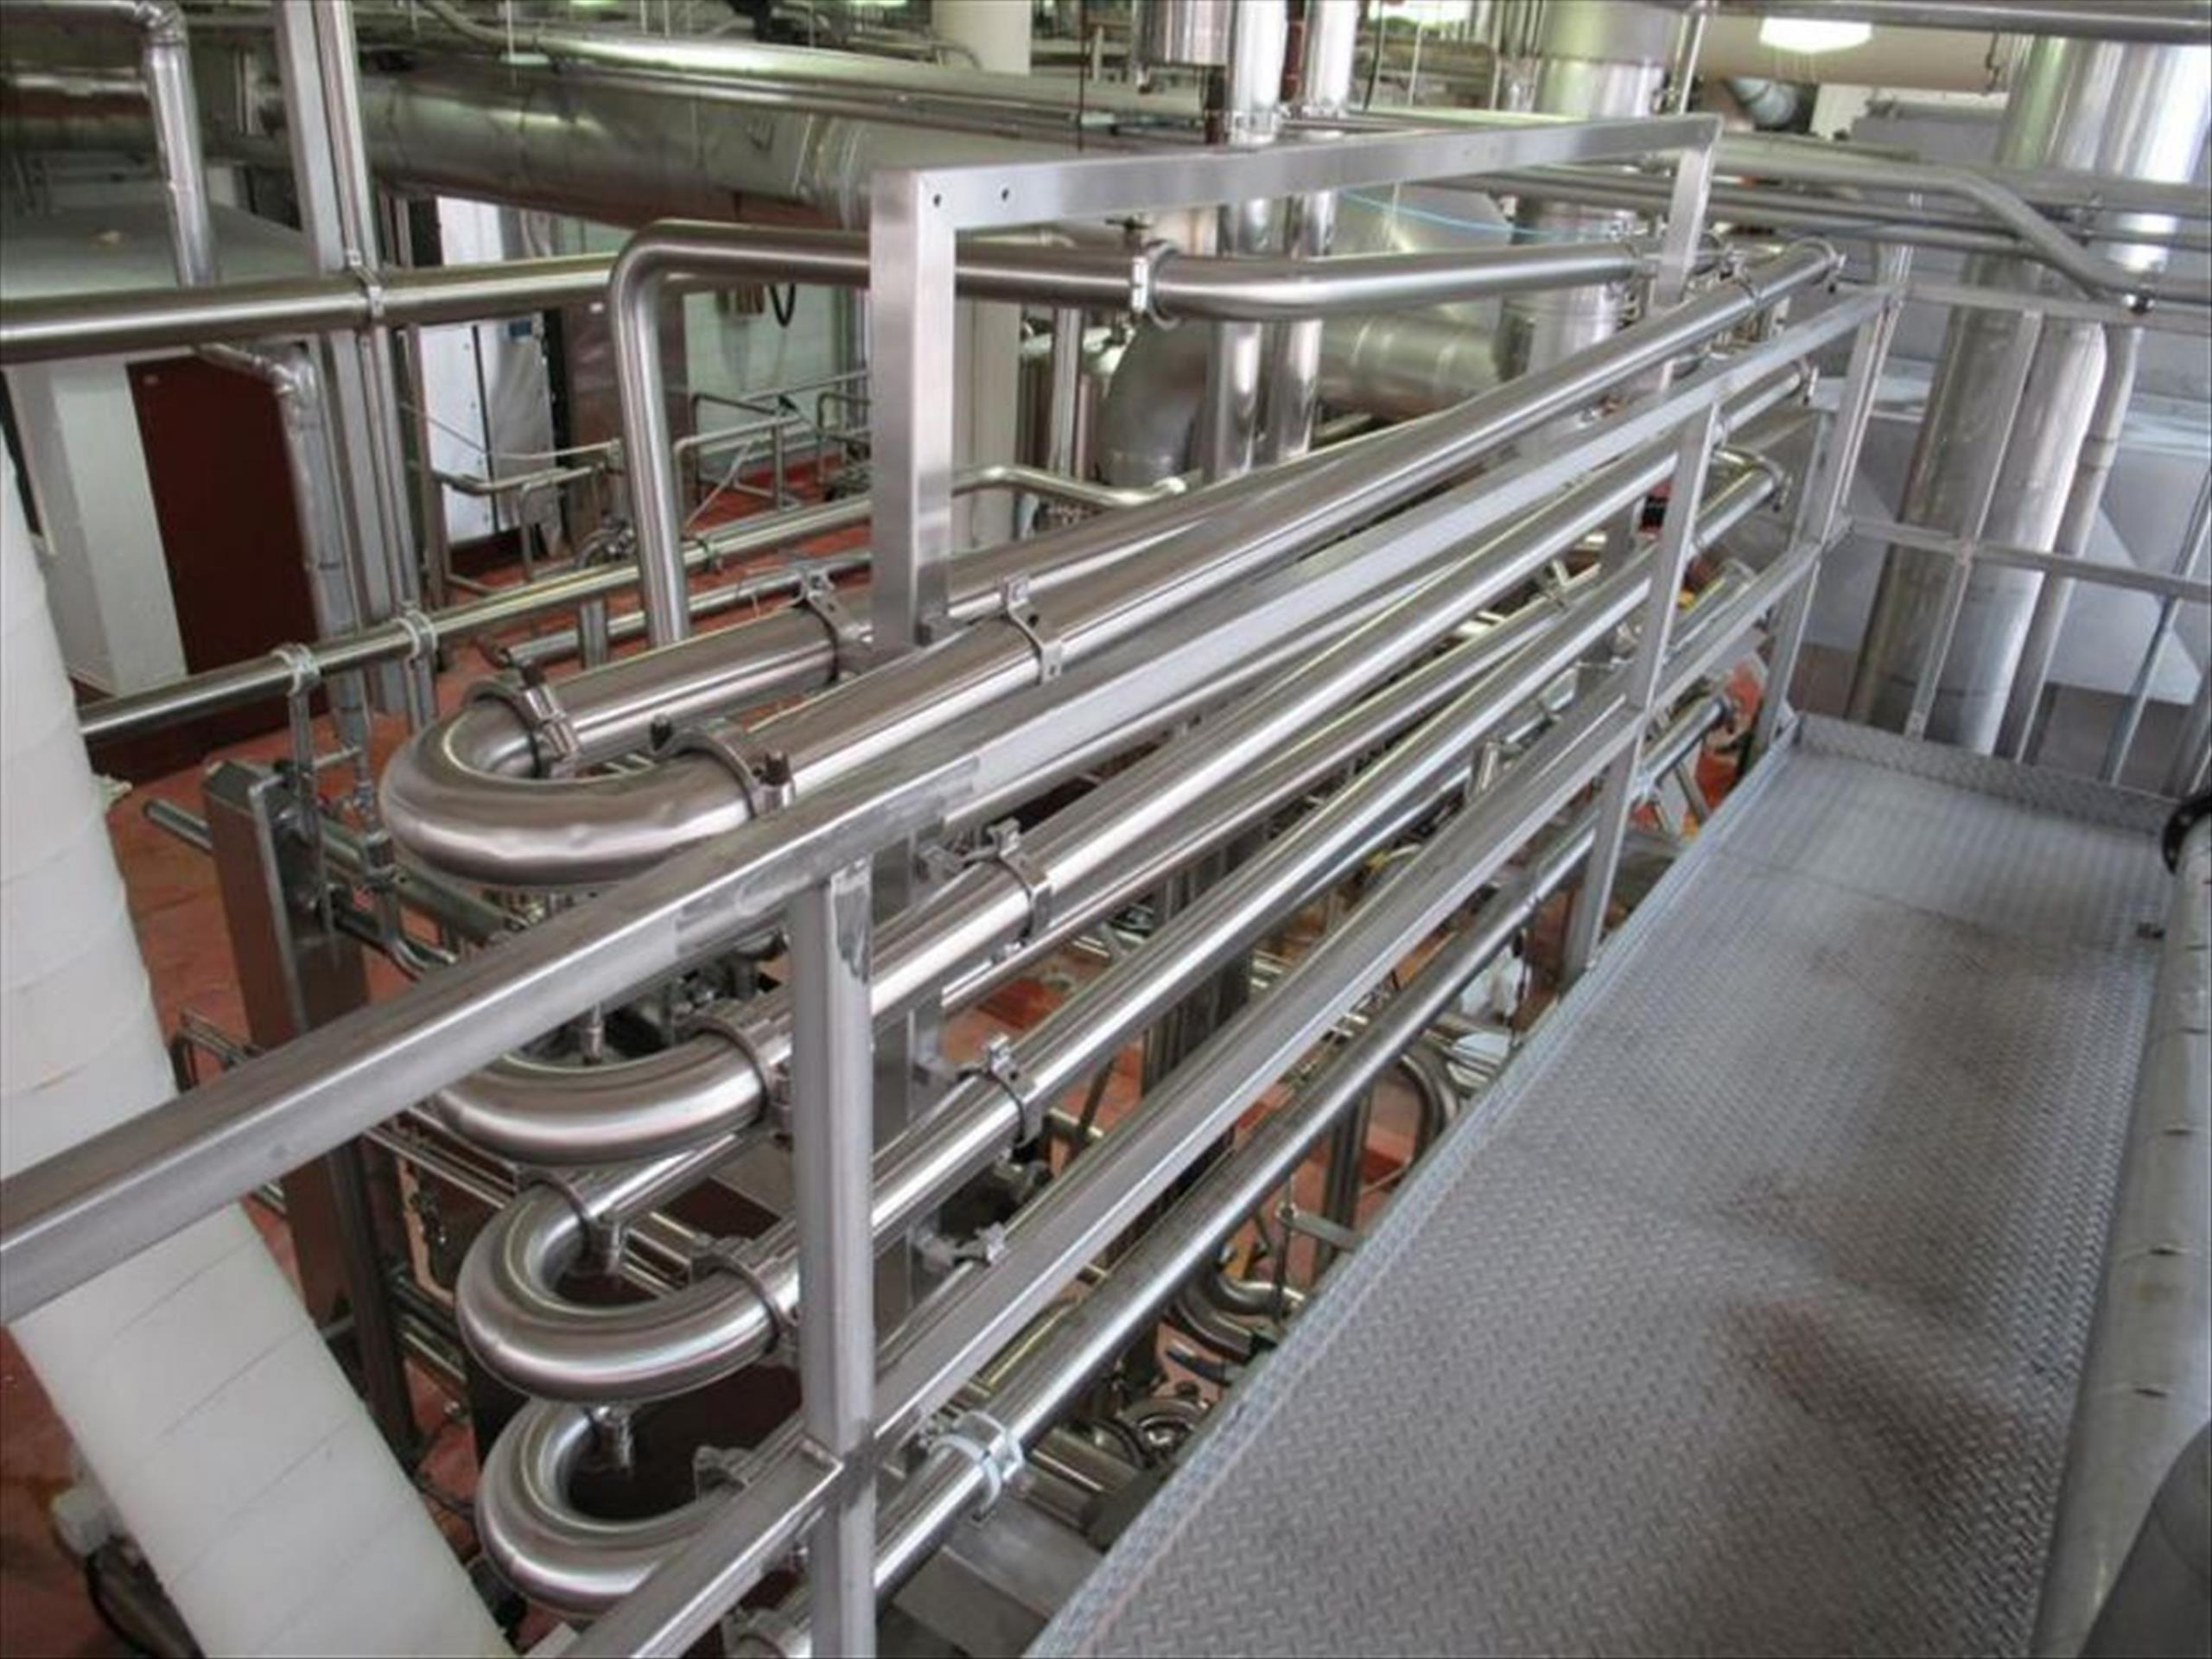 Hot hold loop 4 pass, 3 in dia x 12 ft l per pass, from plate hex junction to recirculation pump and